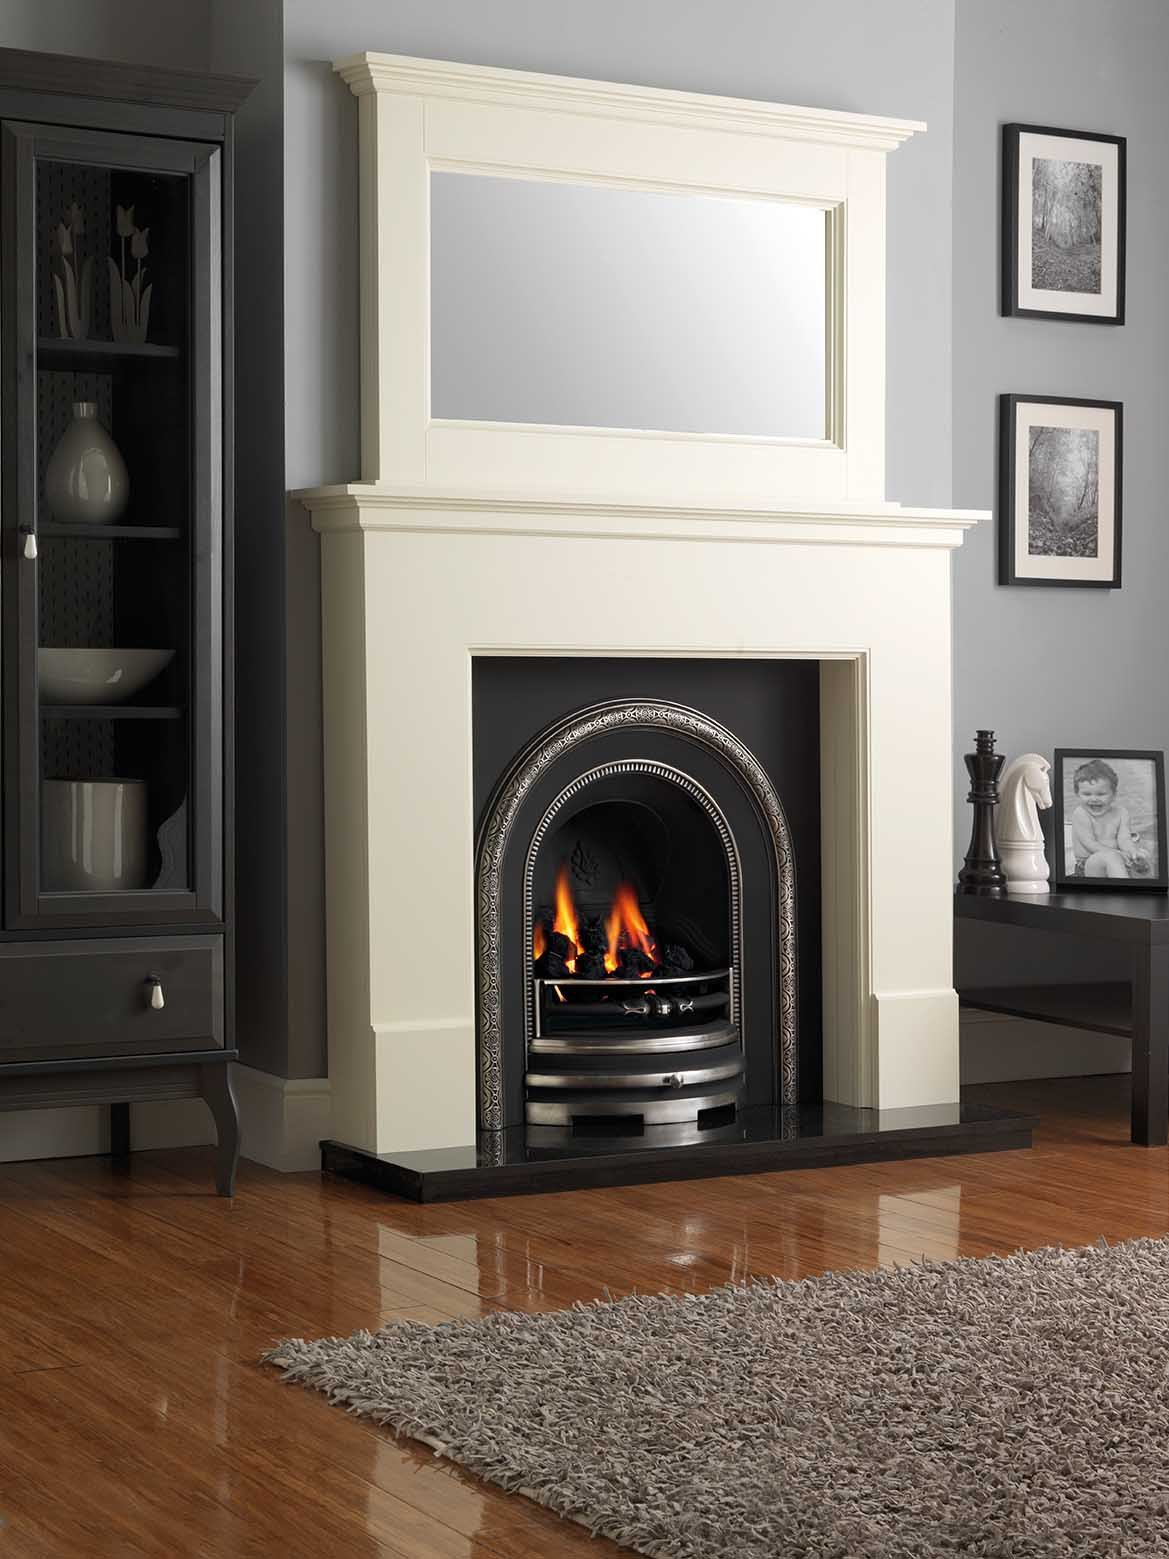 Warwick Surround in Olde English White with matching mirror